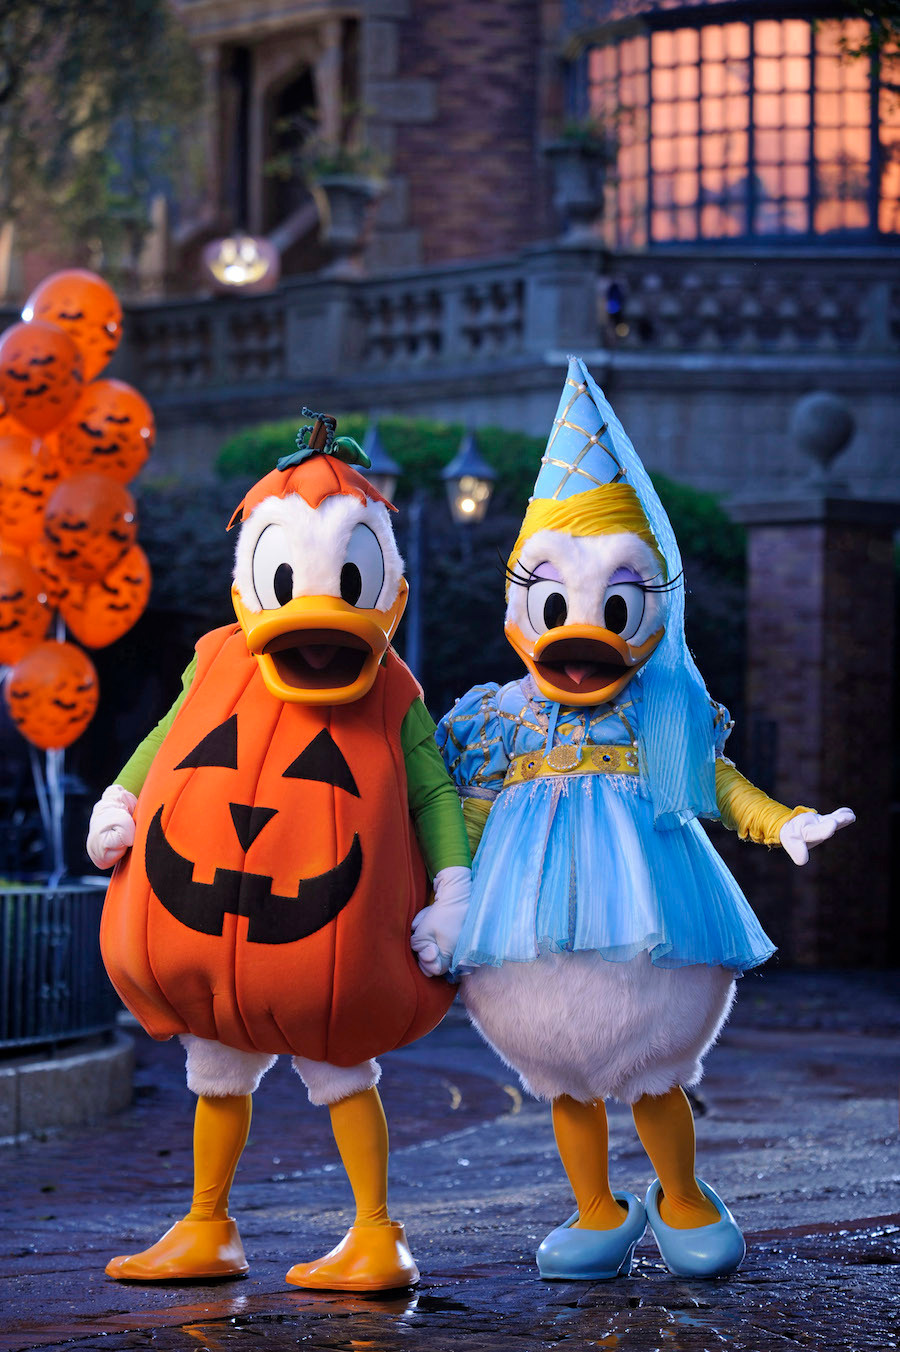 List of Characters & Where to Find Them at Mickey's Not-So-Scary Halloween Party